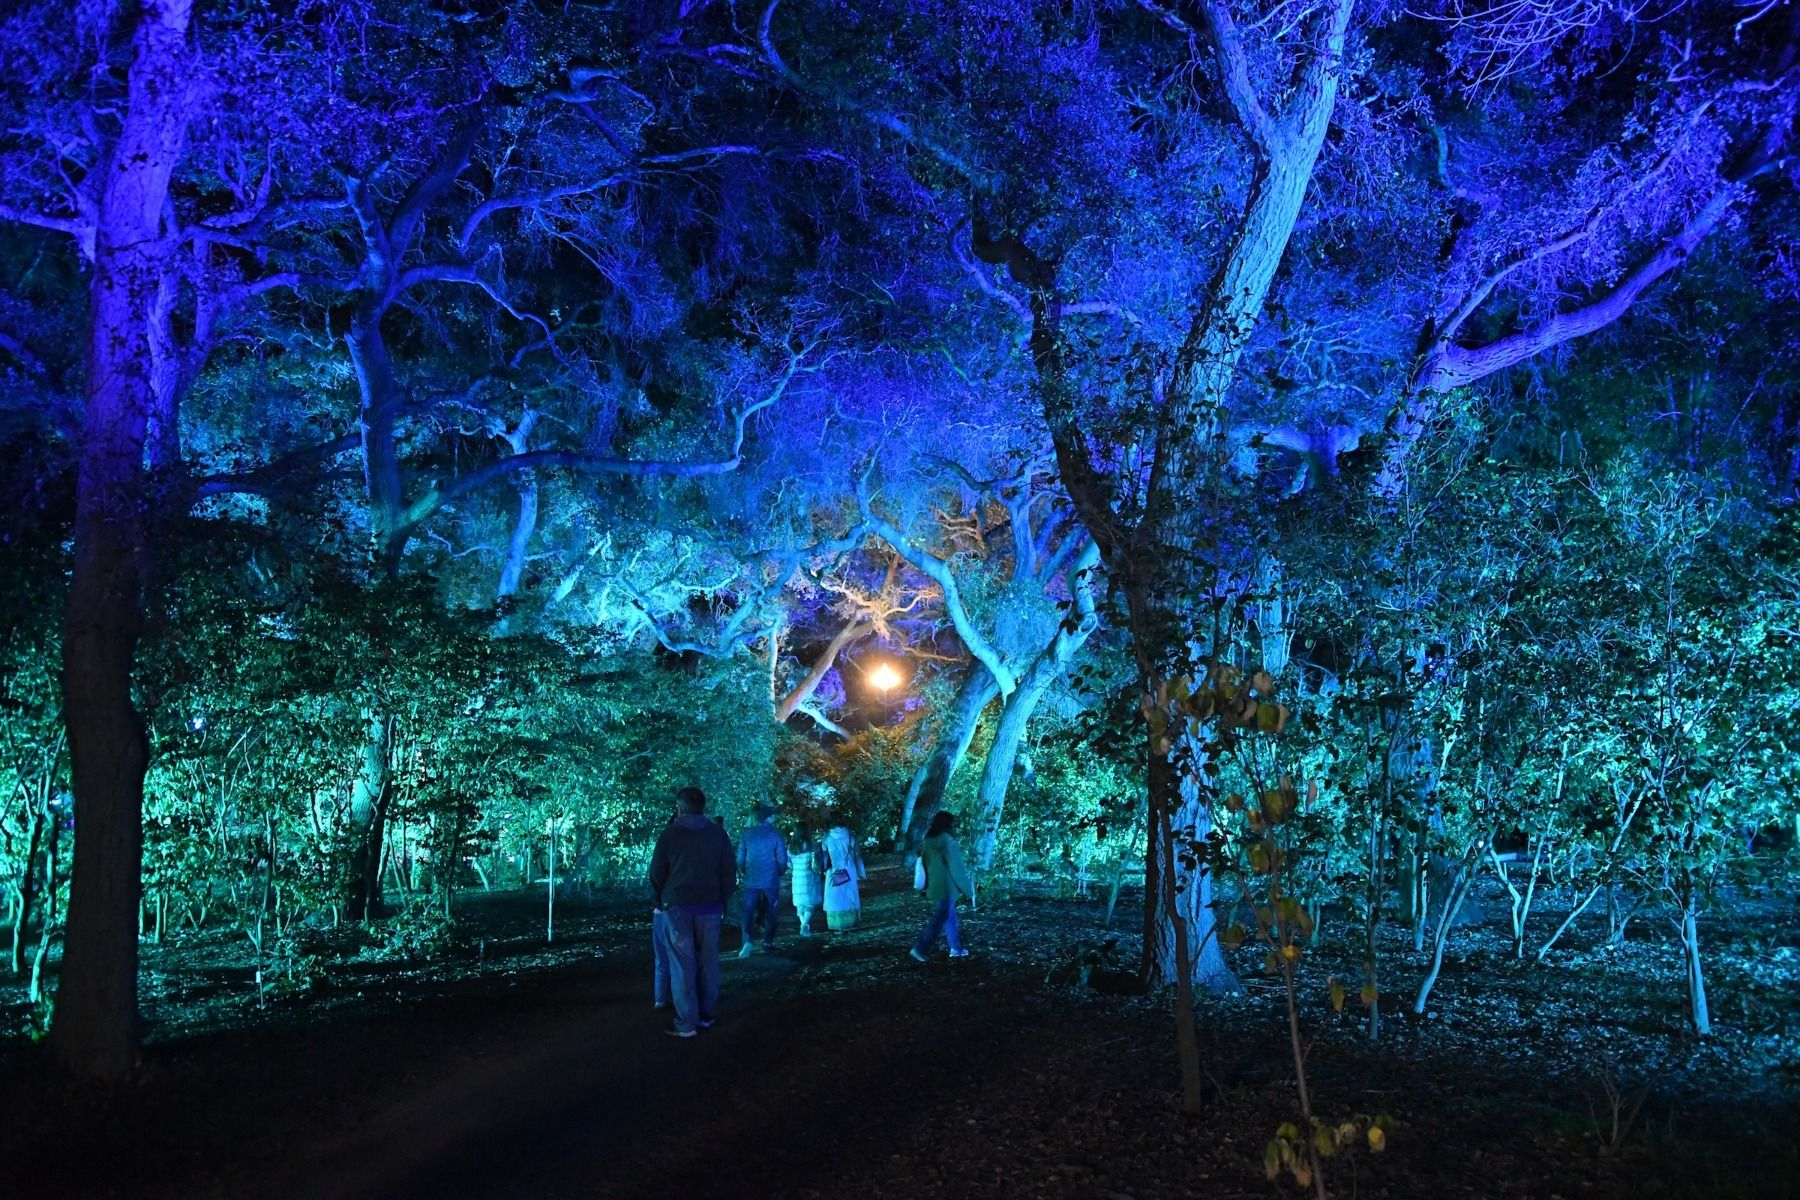 e5d27376adf72536eee72a575b6a323c - Enchanted Forest Of Lights At Descanso Gardens